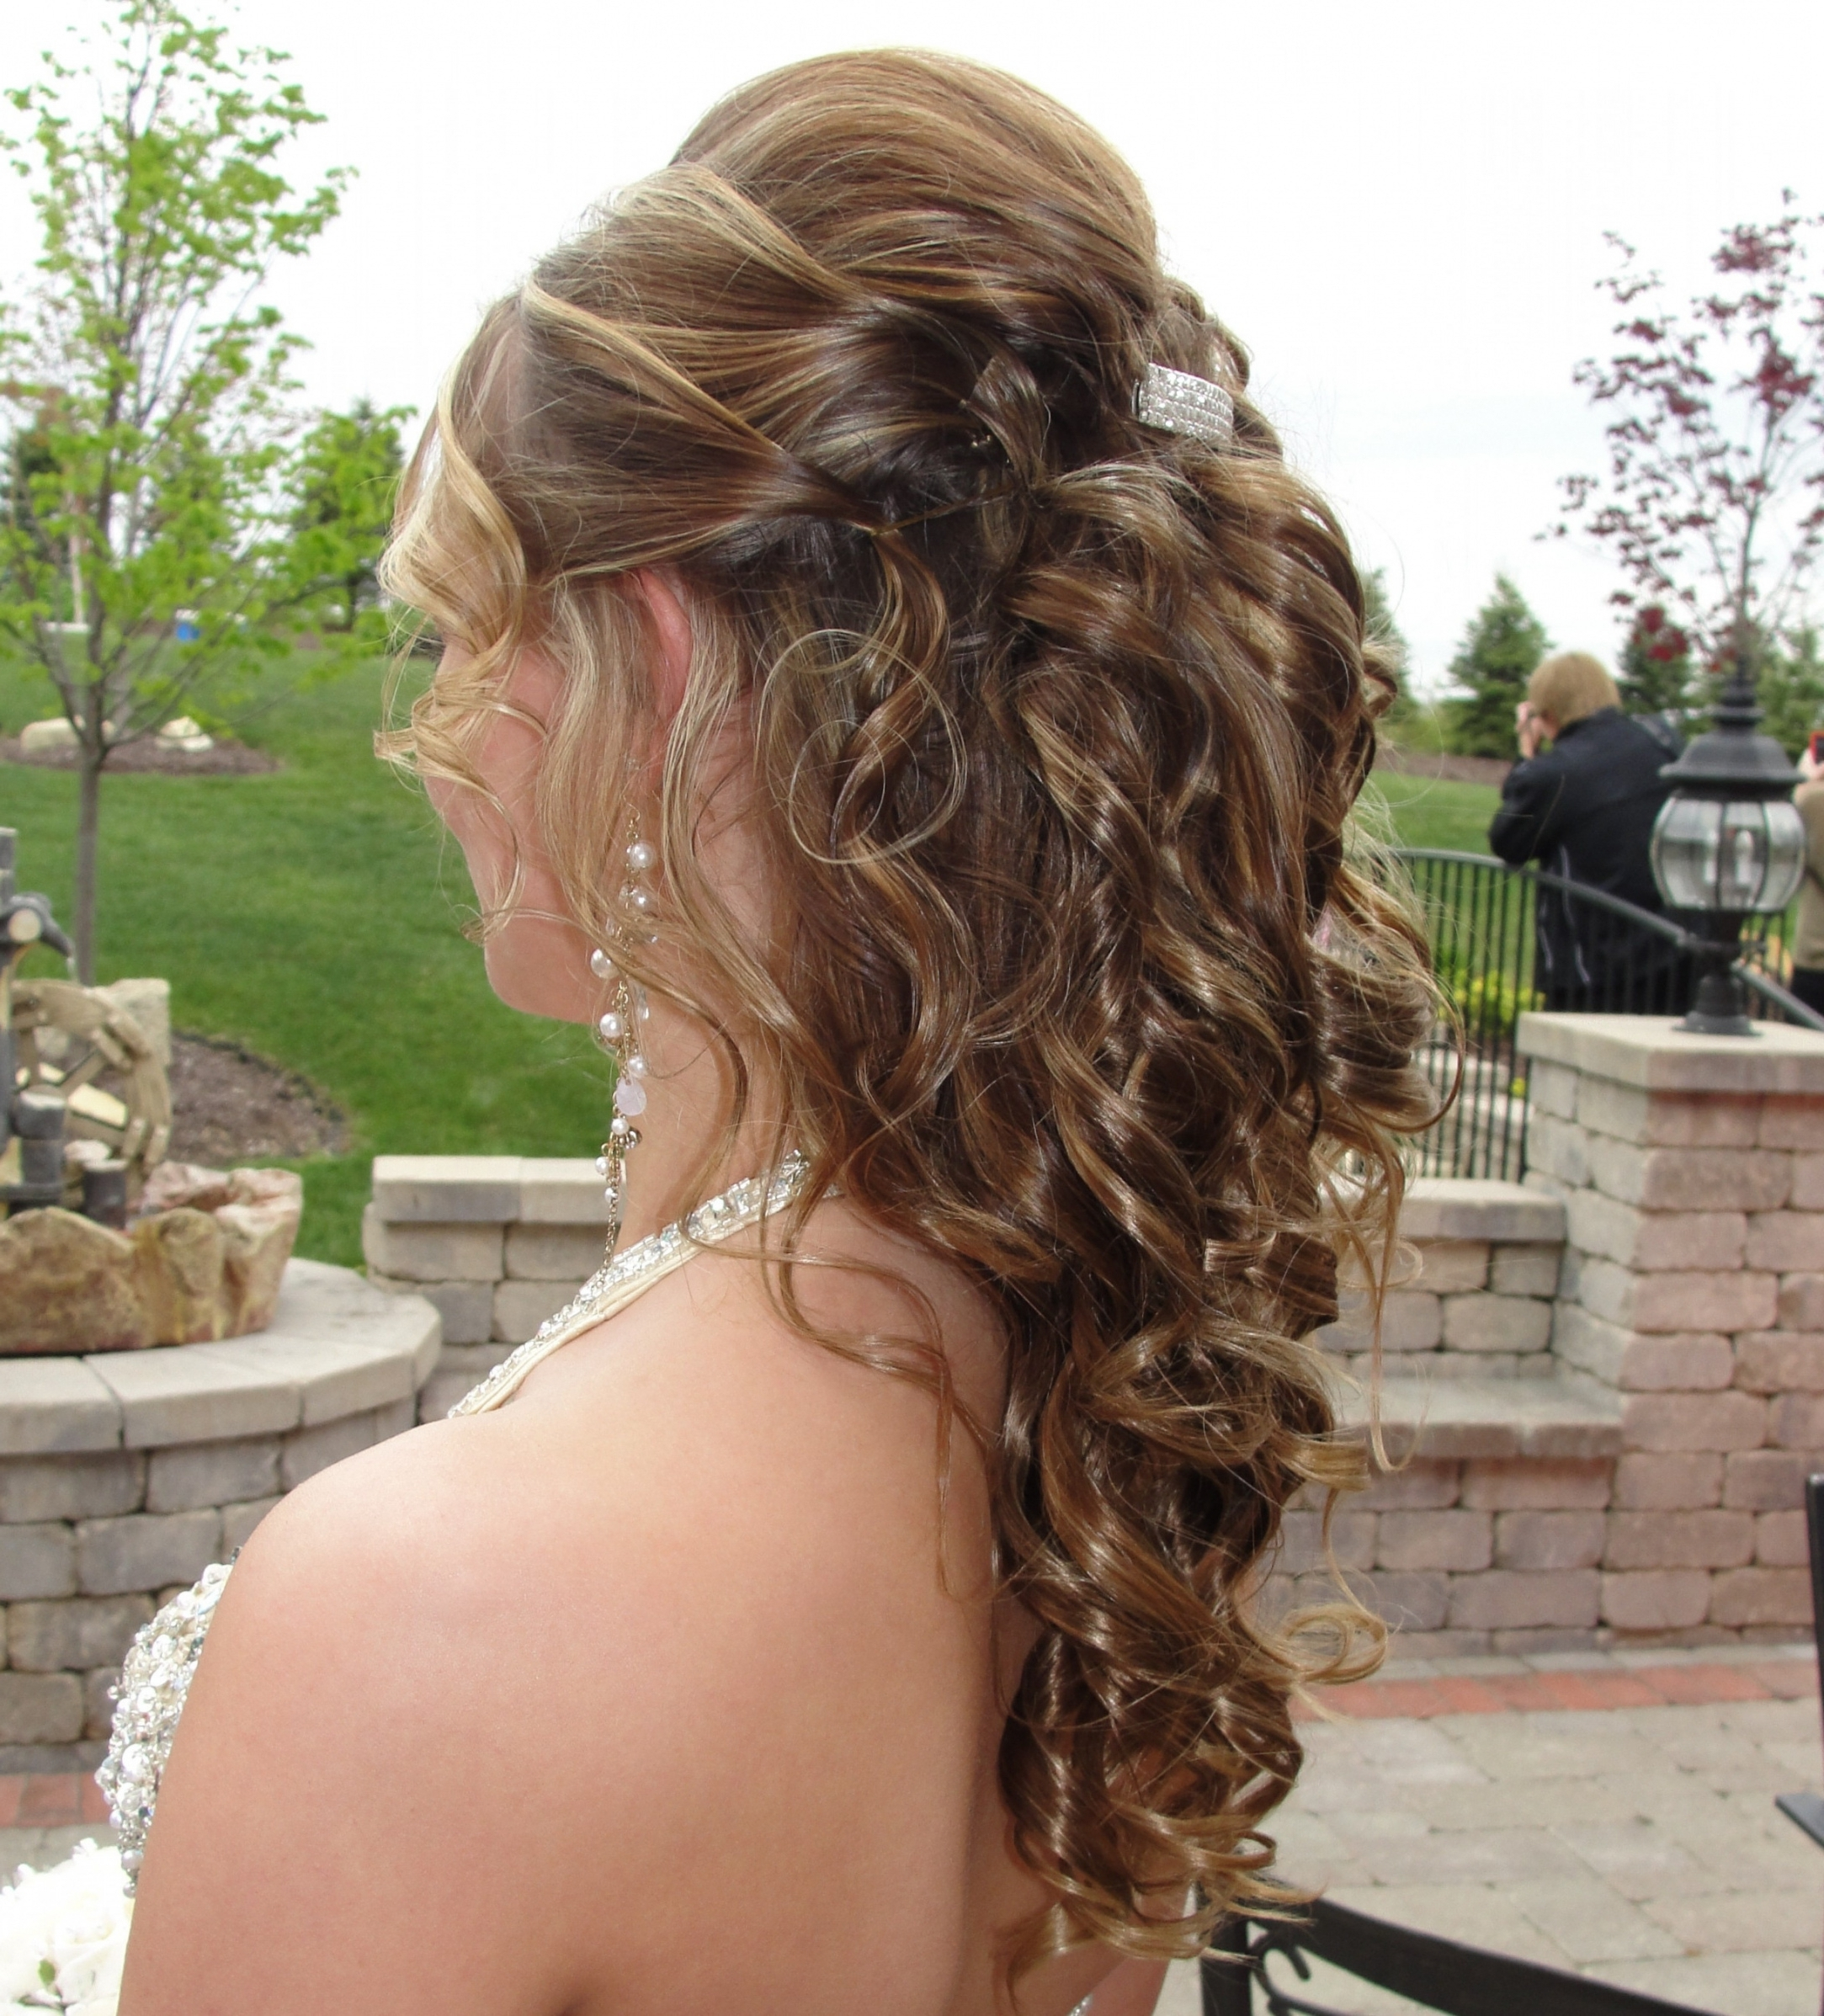 Bridesmaid Hairstyles Down Braid New Half Up Half Down Prom (View 9 of 15)